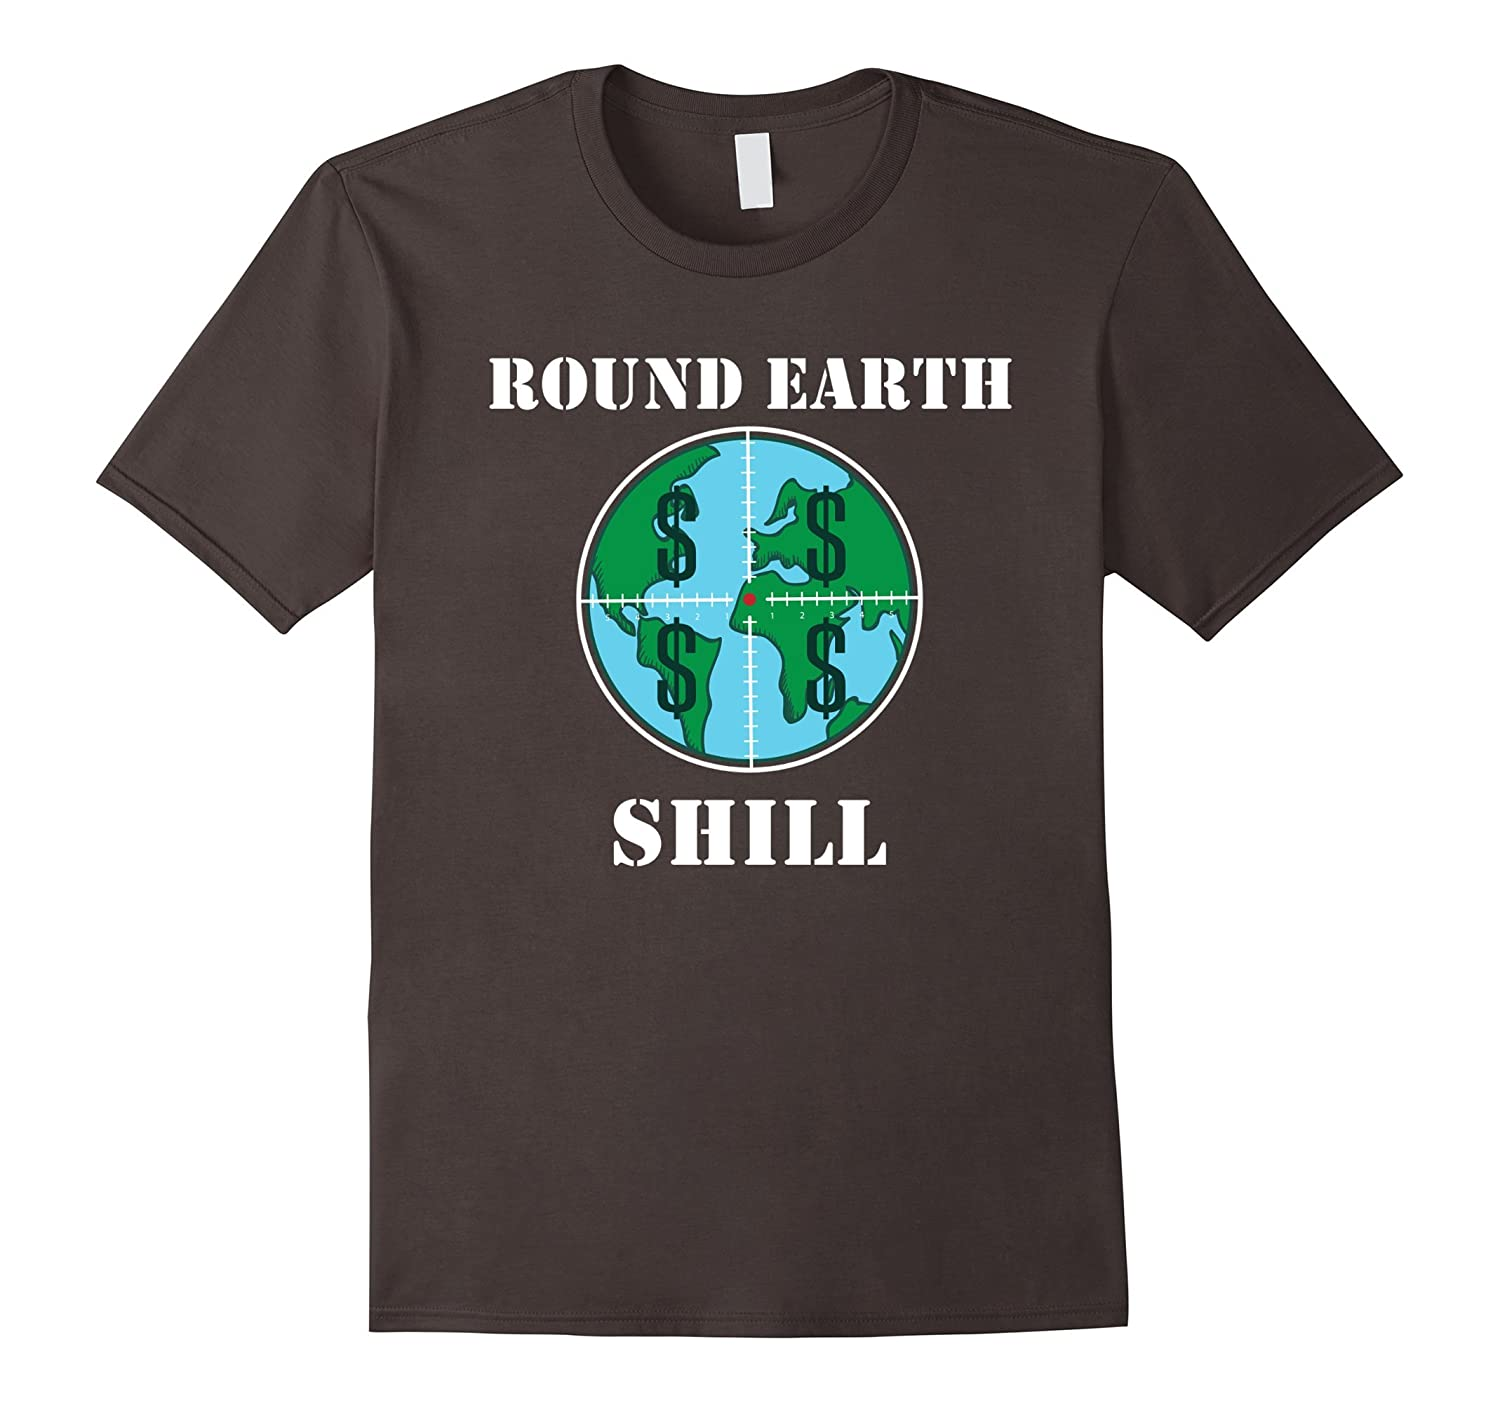 Round Earth Shill – Funny Earth T-Shirt